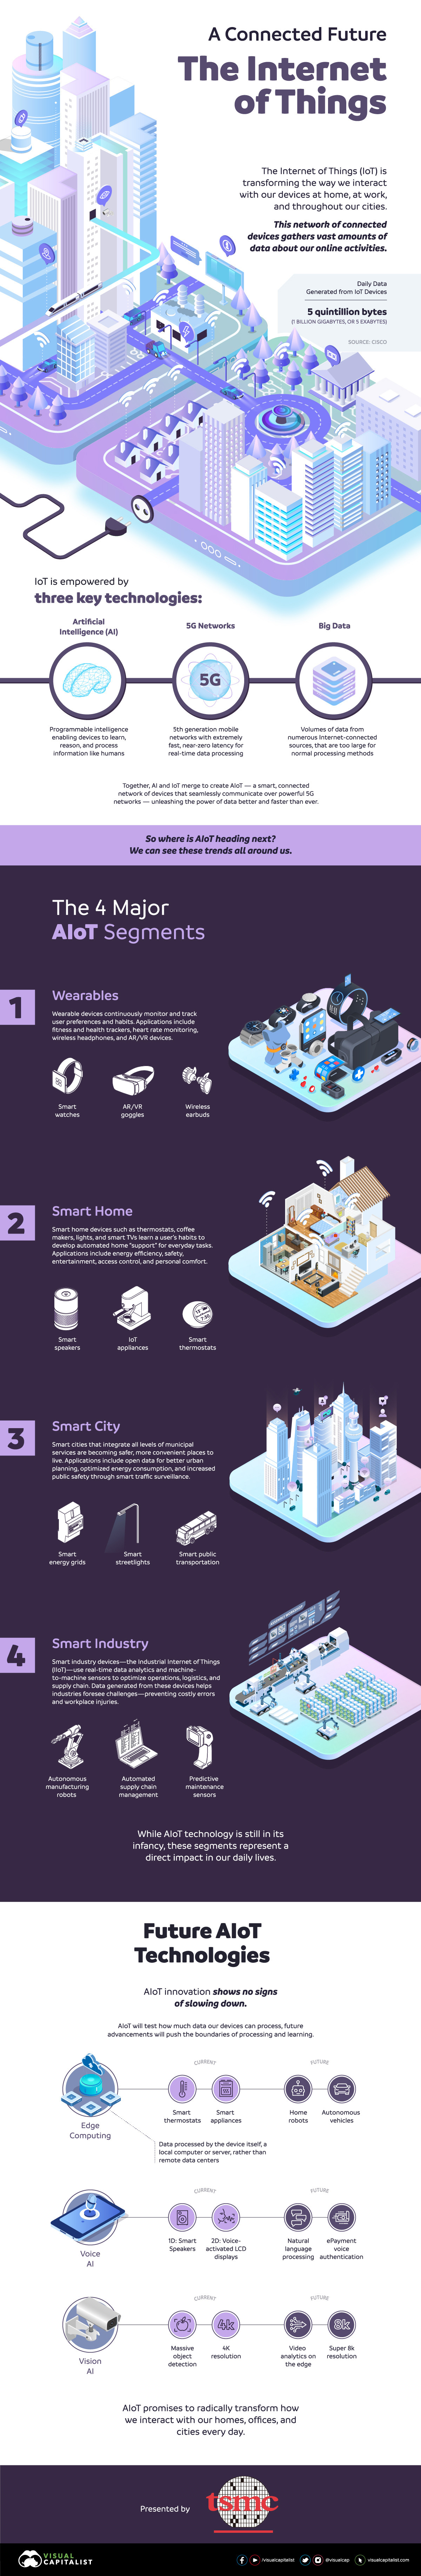 an infographic showing how the Internet of Things is transforming how we interact with devices at home, at work and throughout our cities